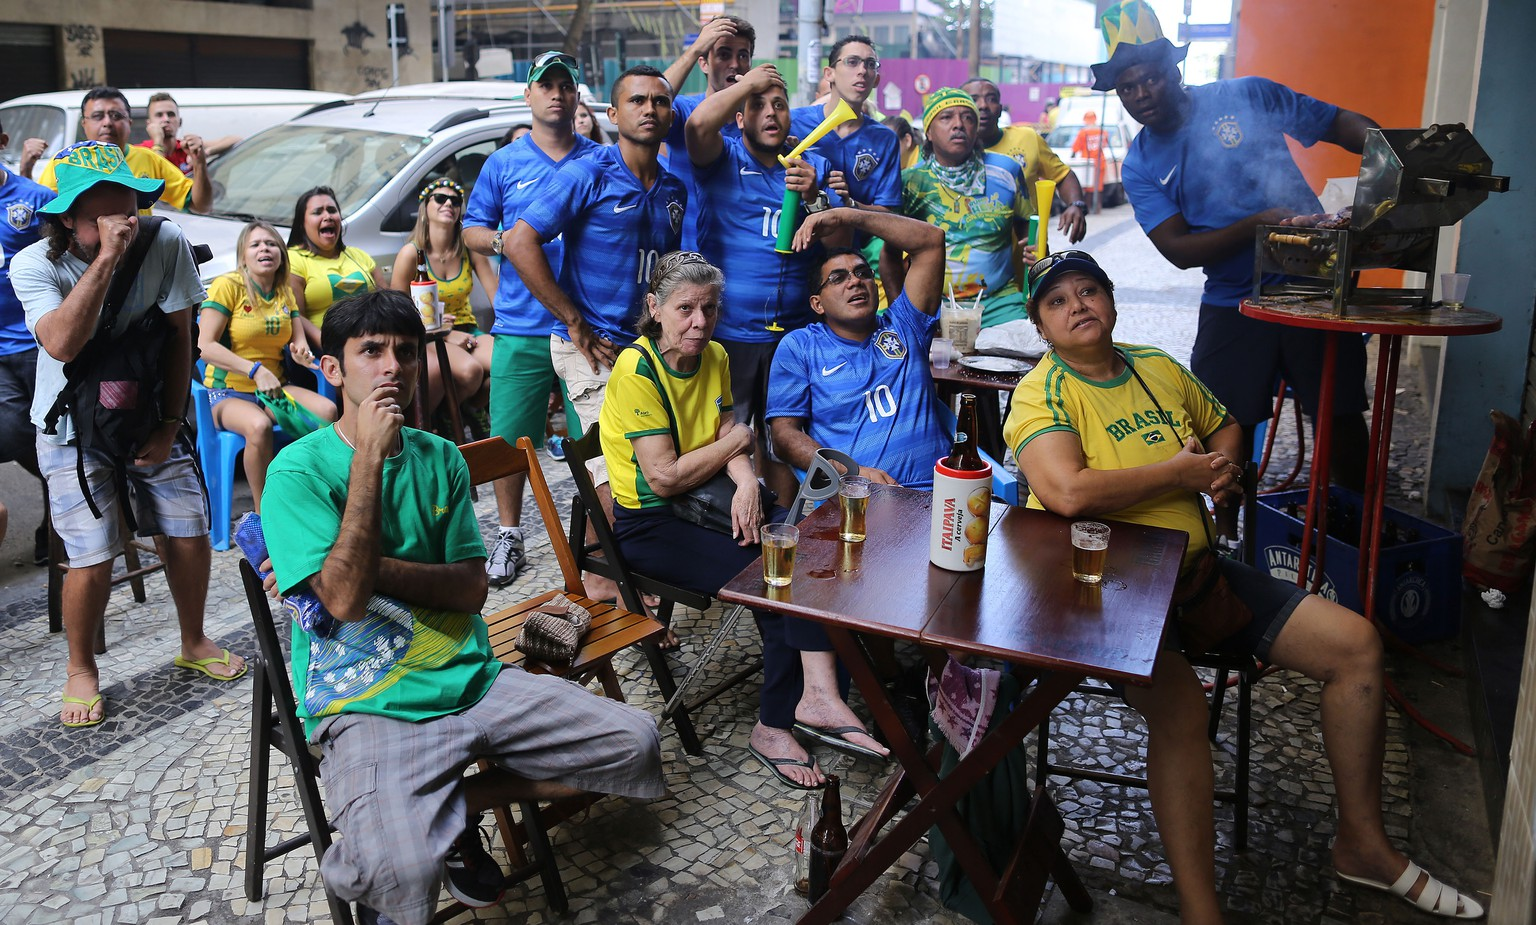 Fans of Brazil react as they watch the Brazil vs Chile soccer match on TV during the 2014 World Cup on a sidewalk at the Copacabana area, in Rio de Janeiro, Brazil, Saturday, June 28, 2014.(AP Photo/Leo Correa)